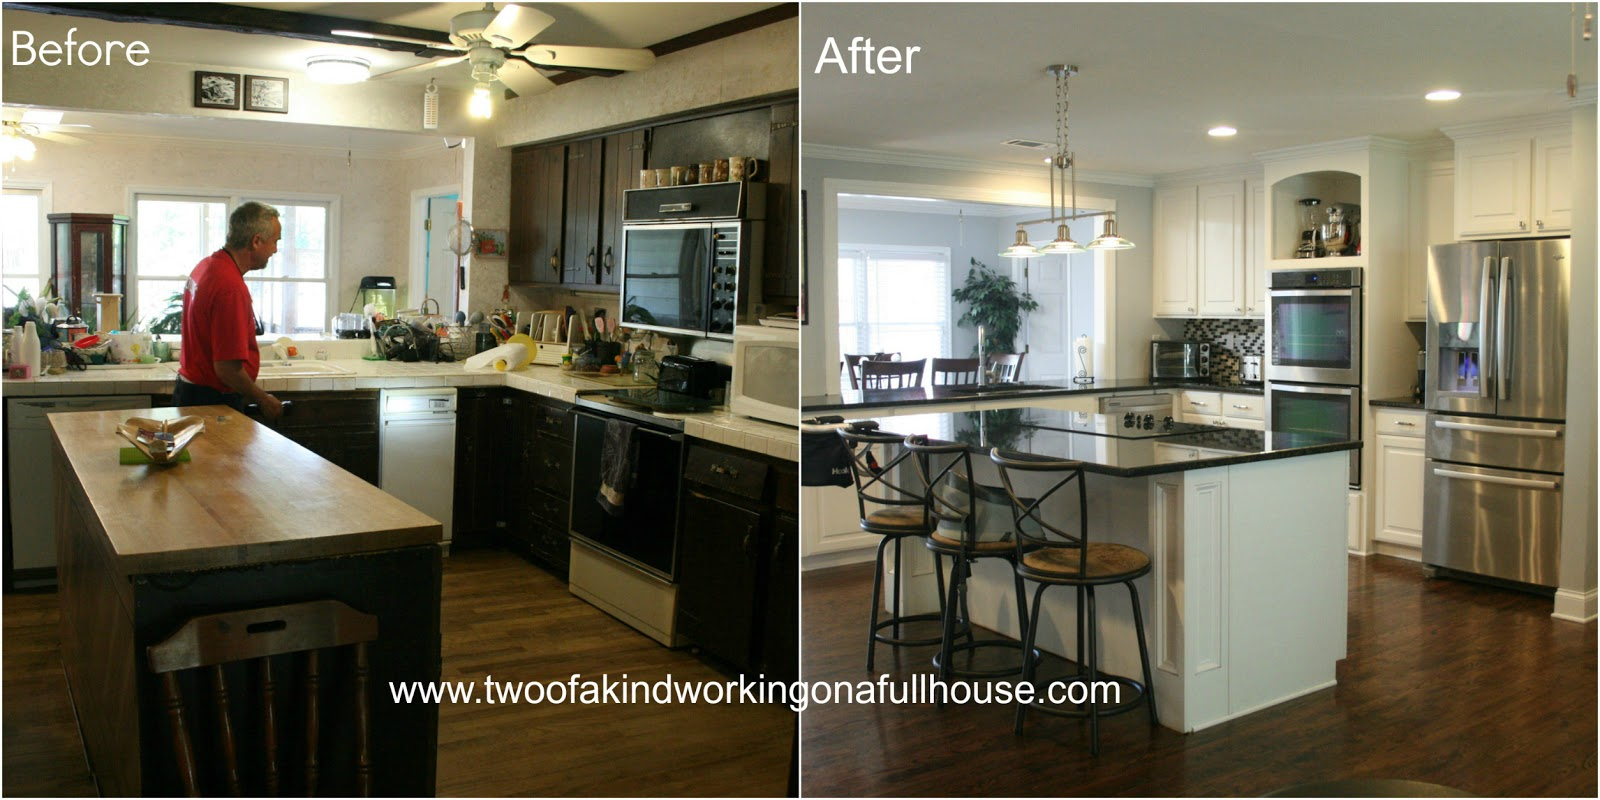 Wordless wednesday before after kitchen remodel pictures for Home kitchen remodeling